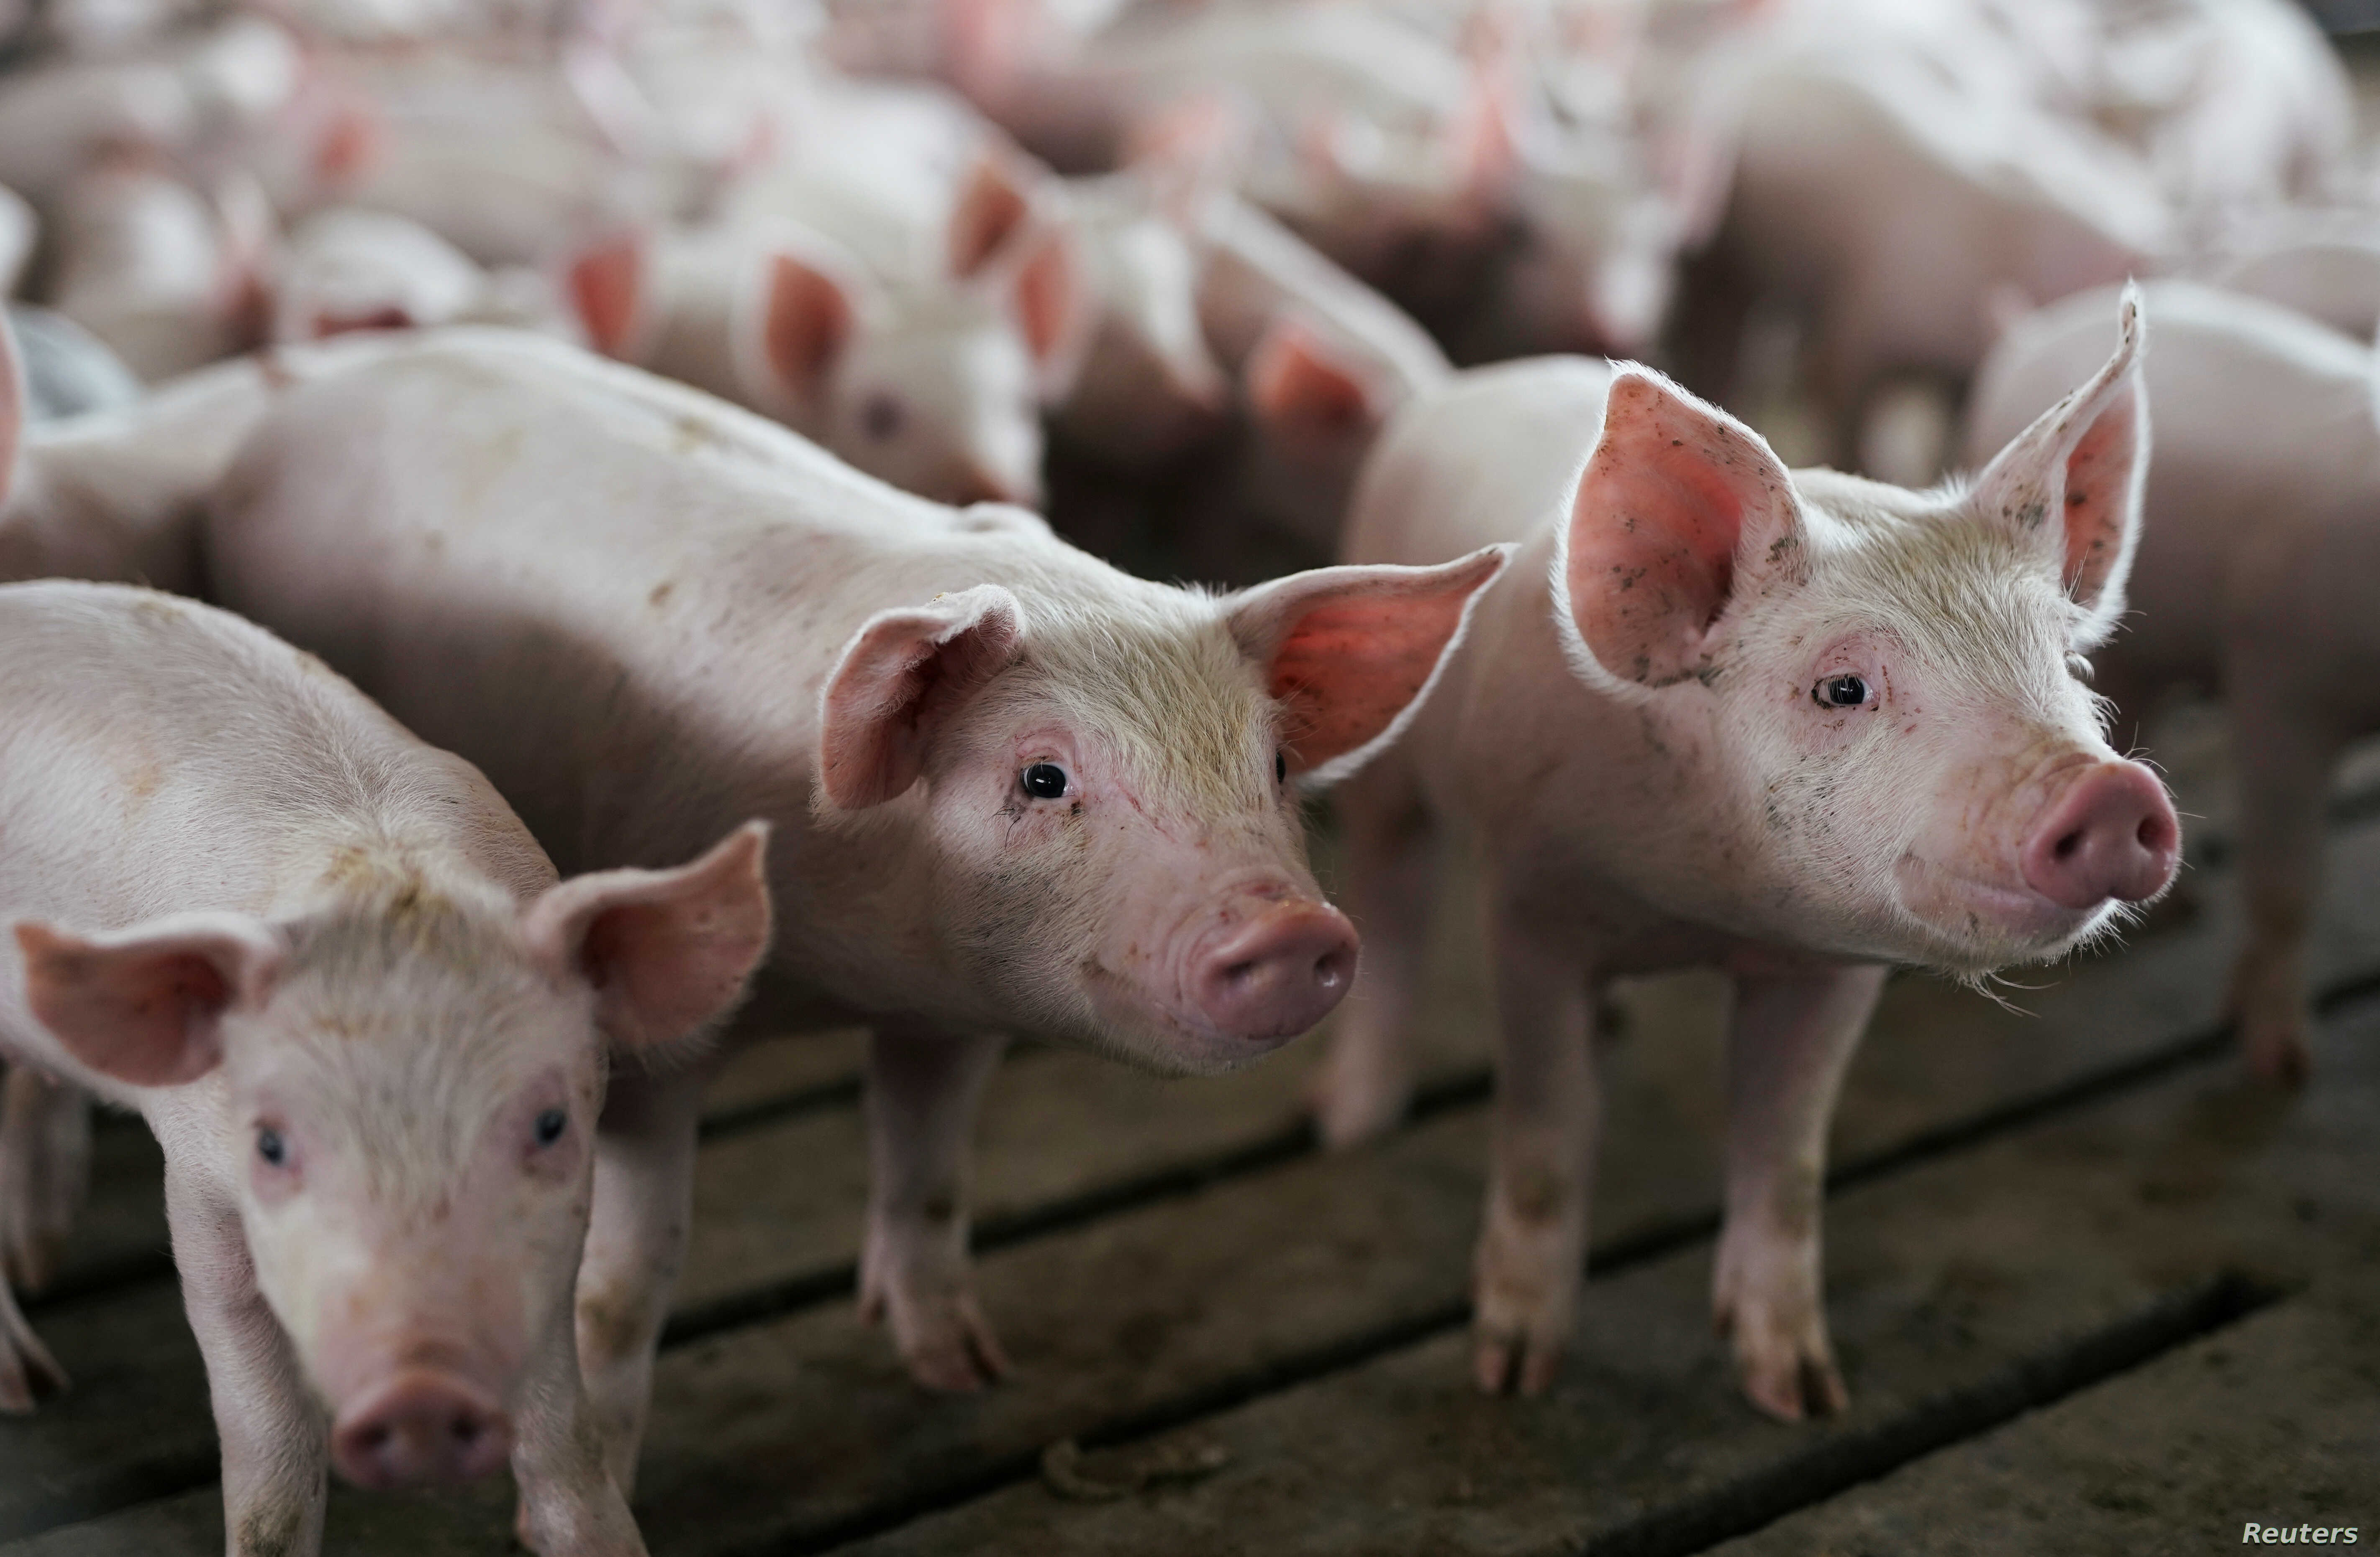 A pen of young pigs is seen during a tour of a hog farm in Ryan, Iowa, May 18, 2019.